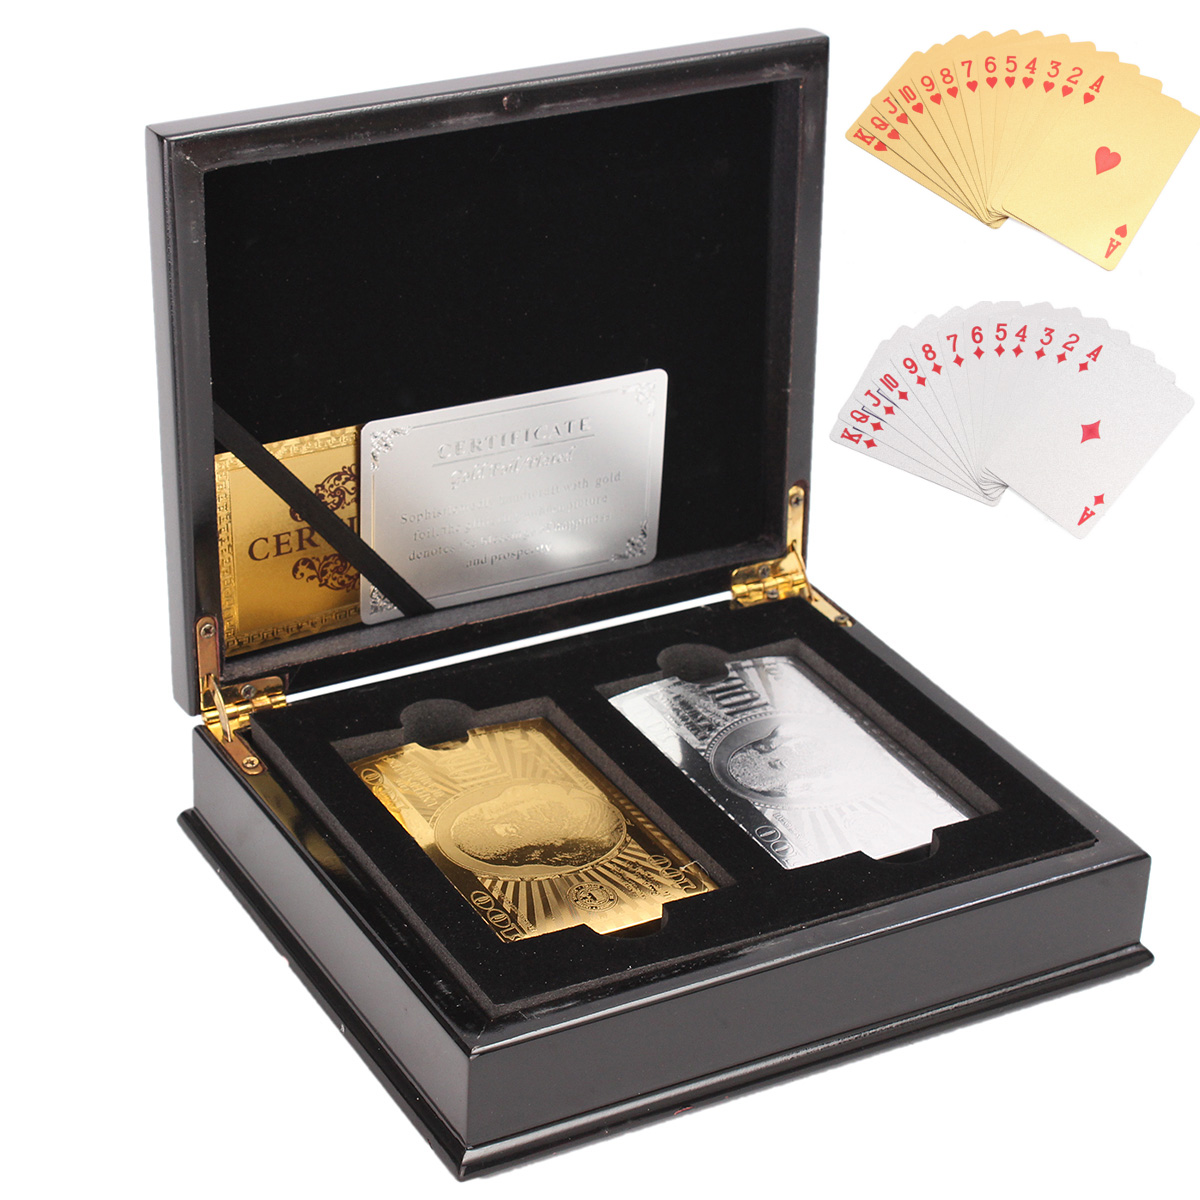 2 set Sliver/Gold Board Game Foil Playing Cards Poker Gold Foil Plated Poker Card Funny With Wooden Box Gambling Pokerstars Gift2 set Sliver/Gold Board Game Foil Playing Cards Poker Gold Foil Plated Poker Card Funny With Wooden Box Gambling Pokerstars Gift